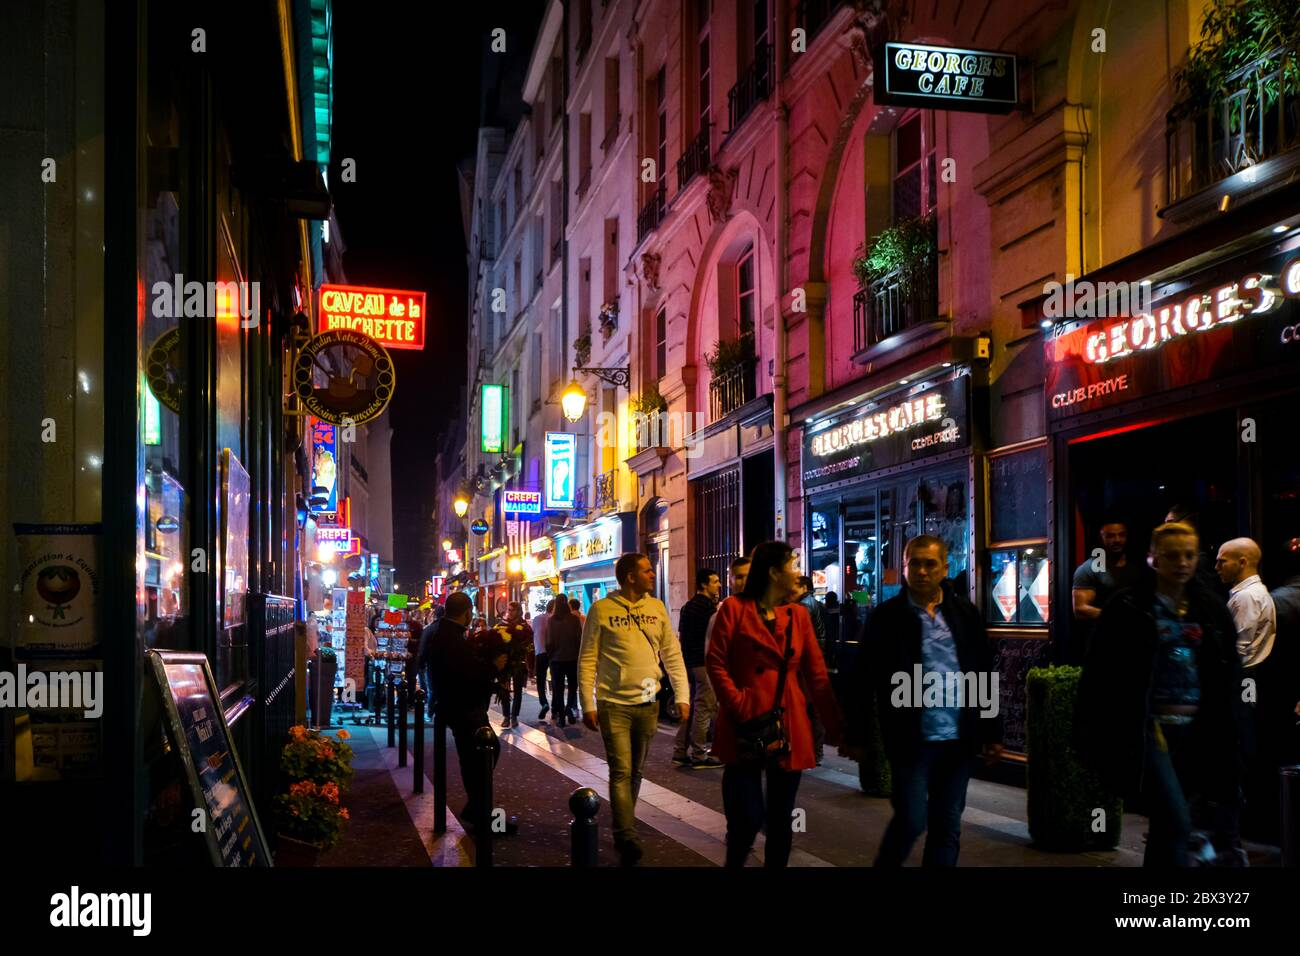 Tourists pass shops and cafes as they walk the colorful neon lit streets late at night in the Latin Quarter section of Paris France Stock Photo